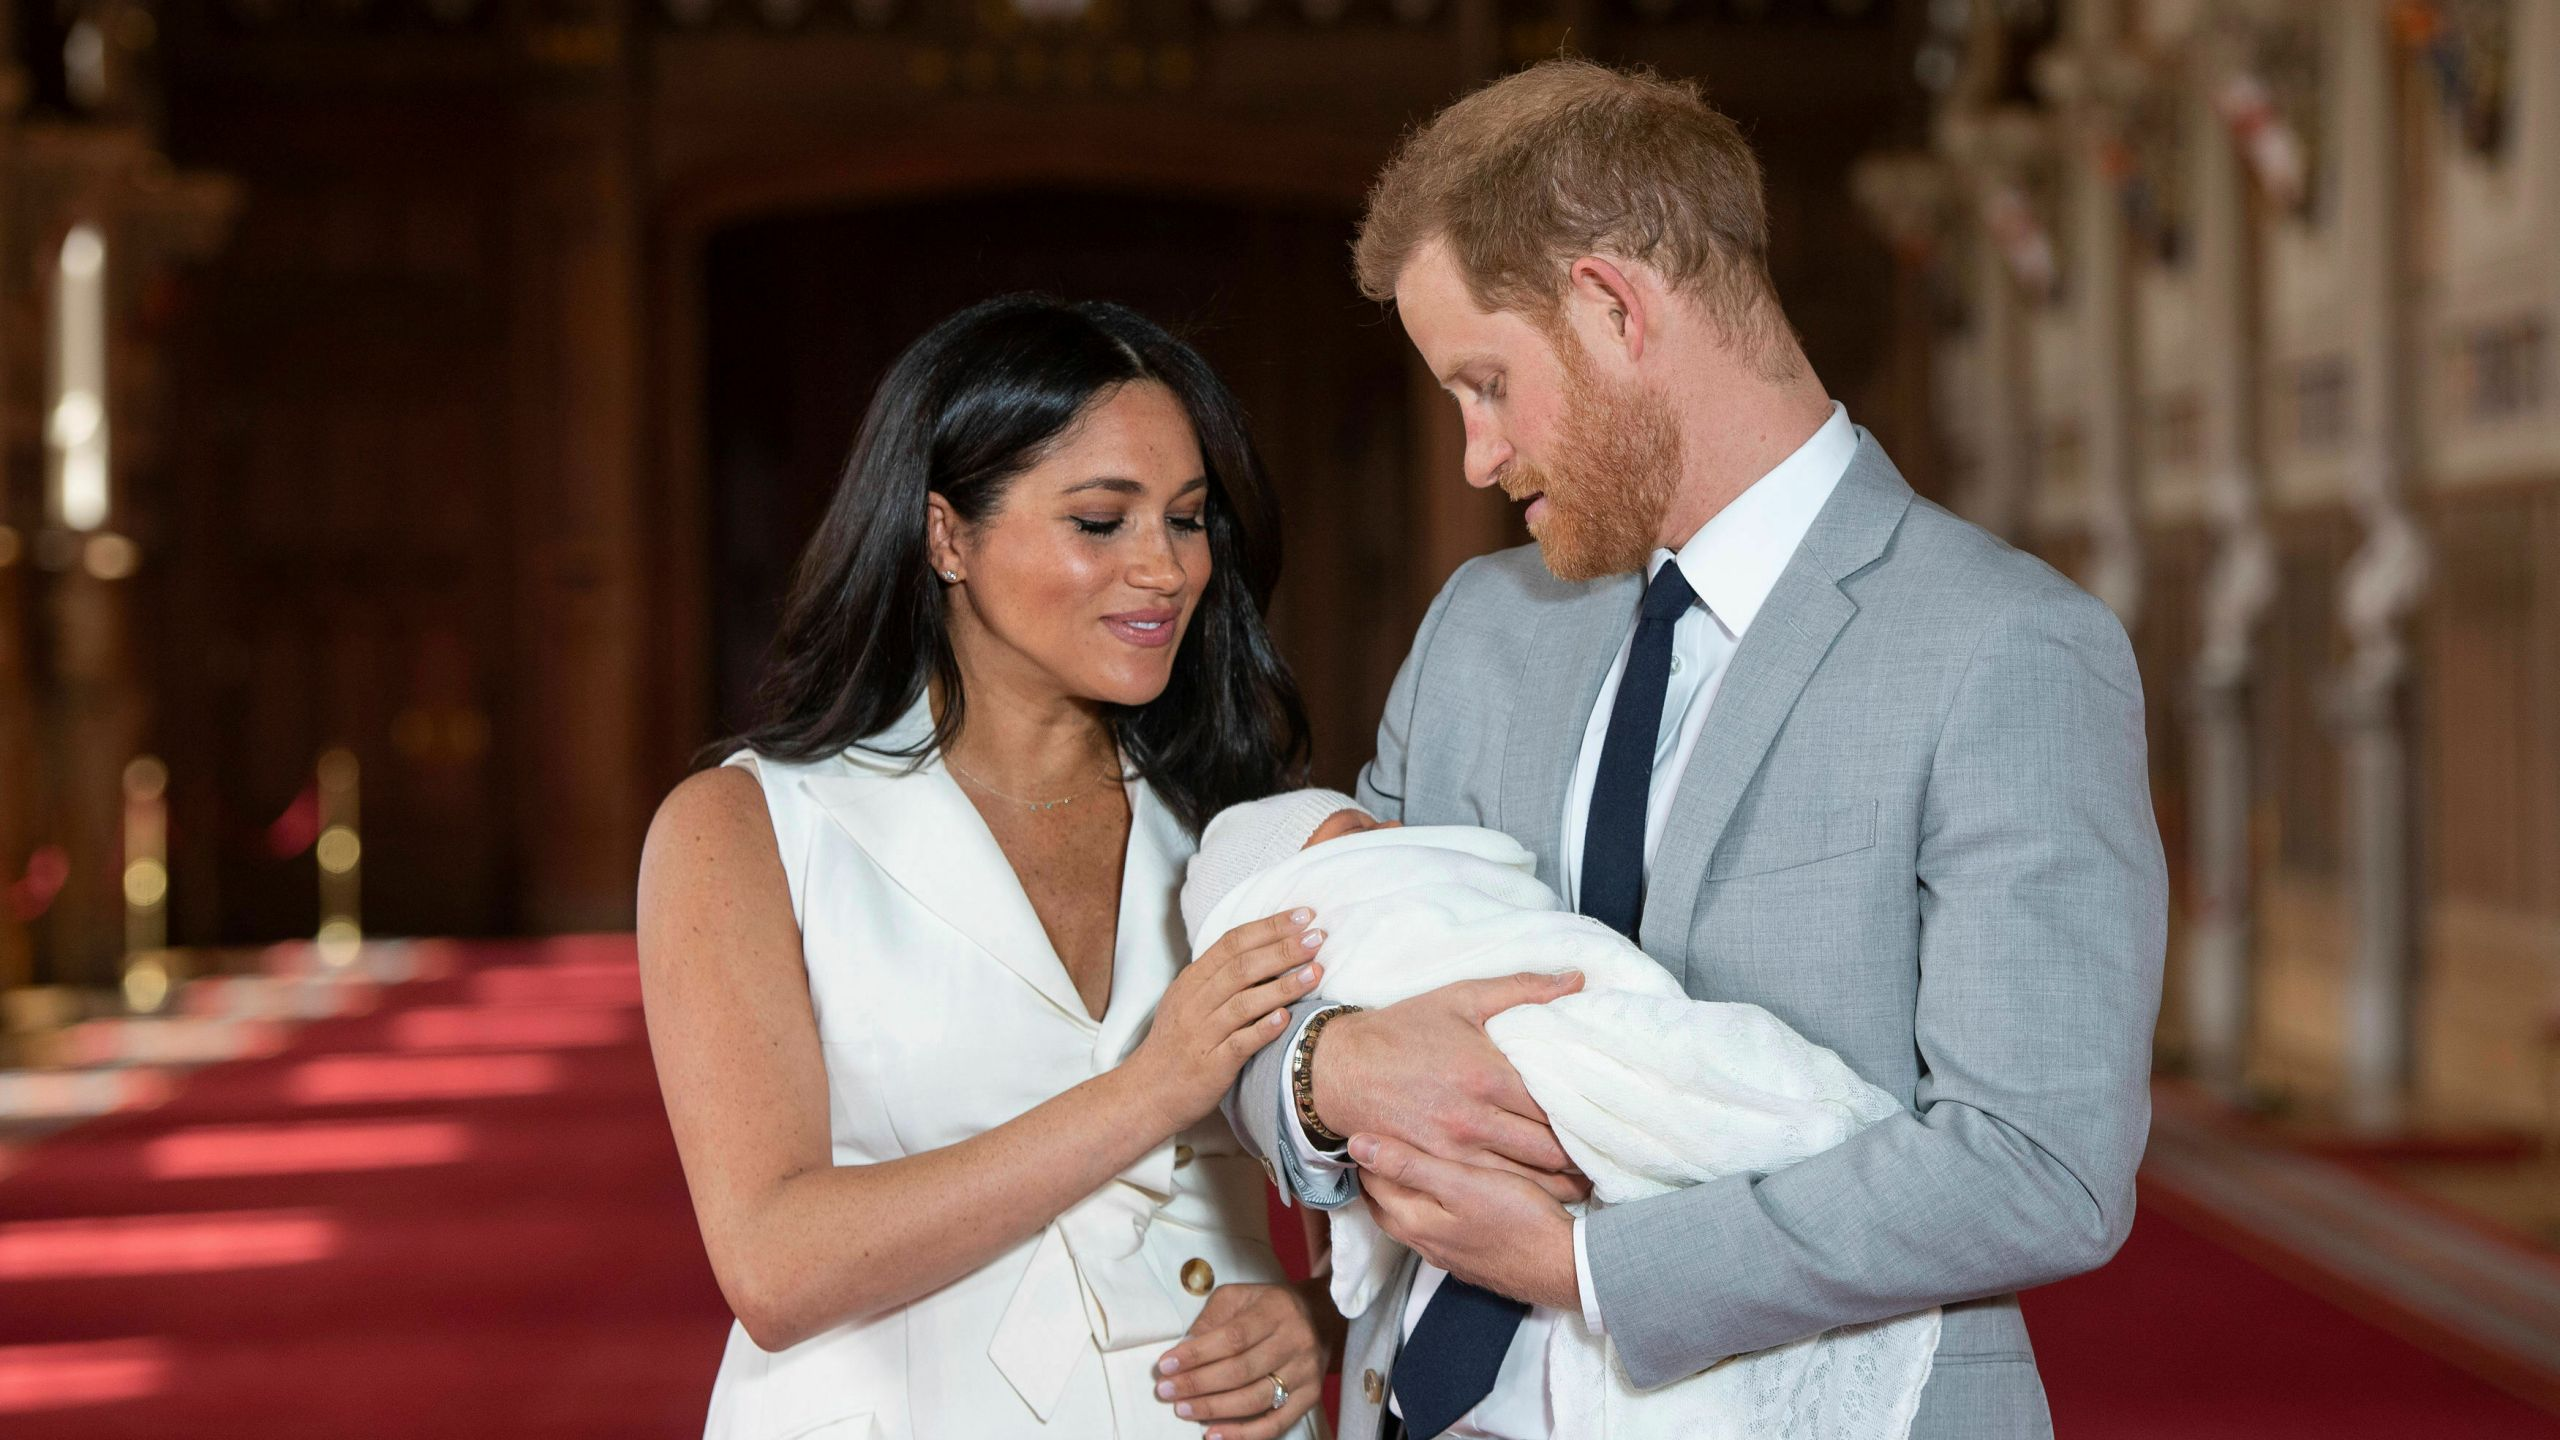 Britain_Royal_Baby_48956-159532.jpg52238350